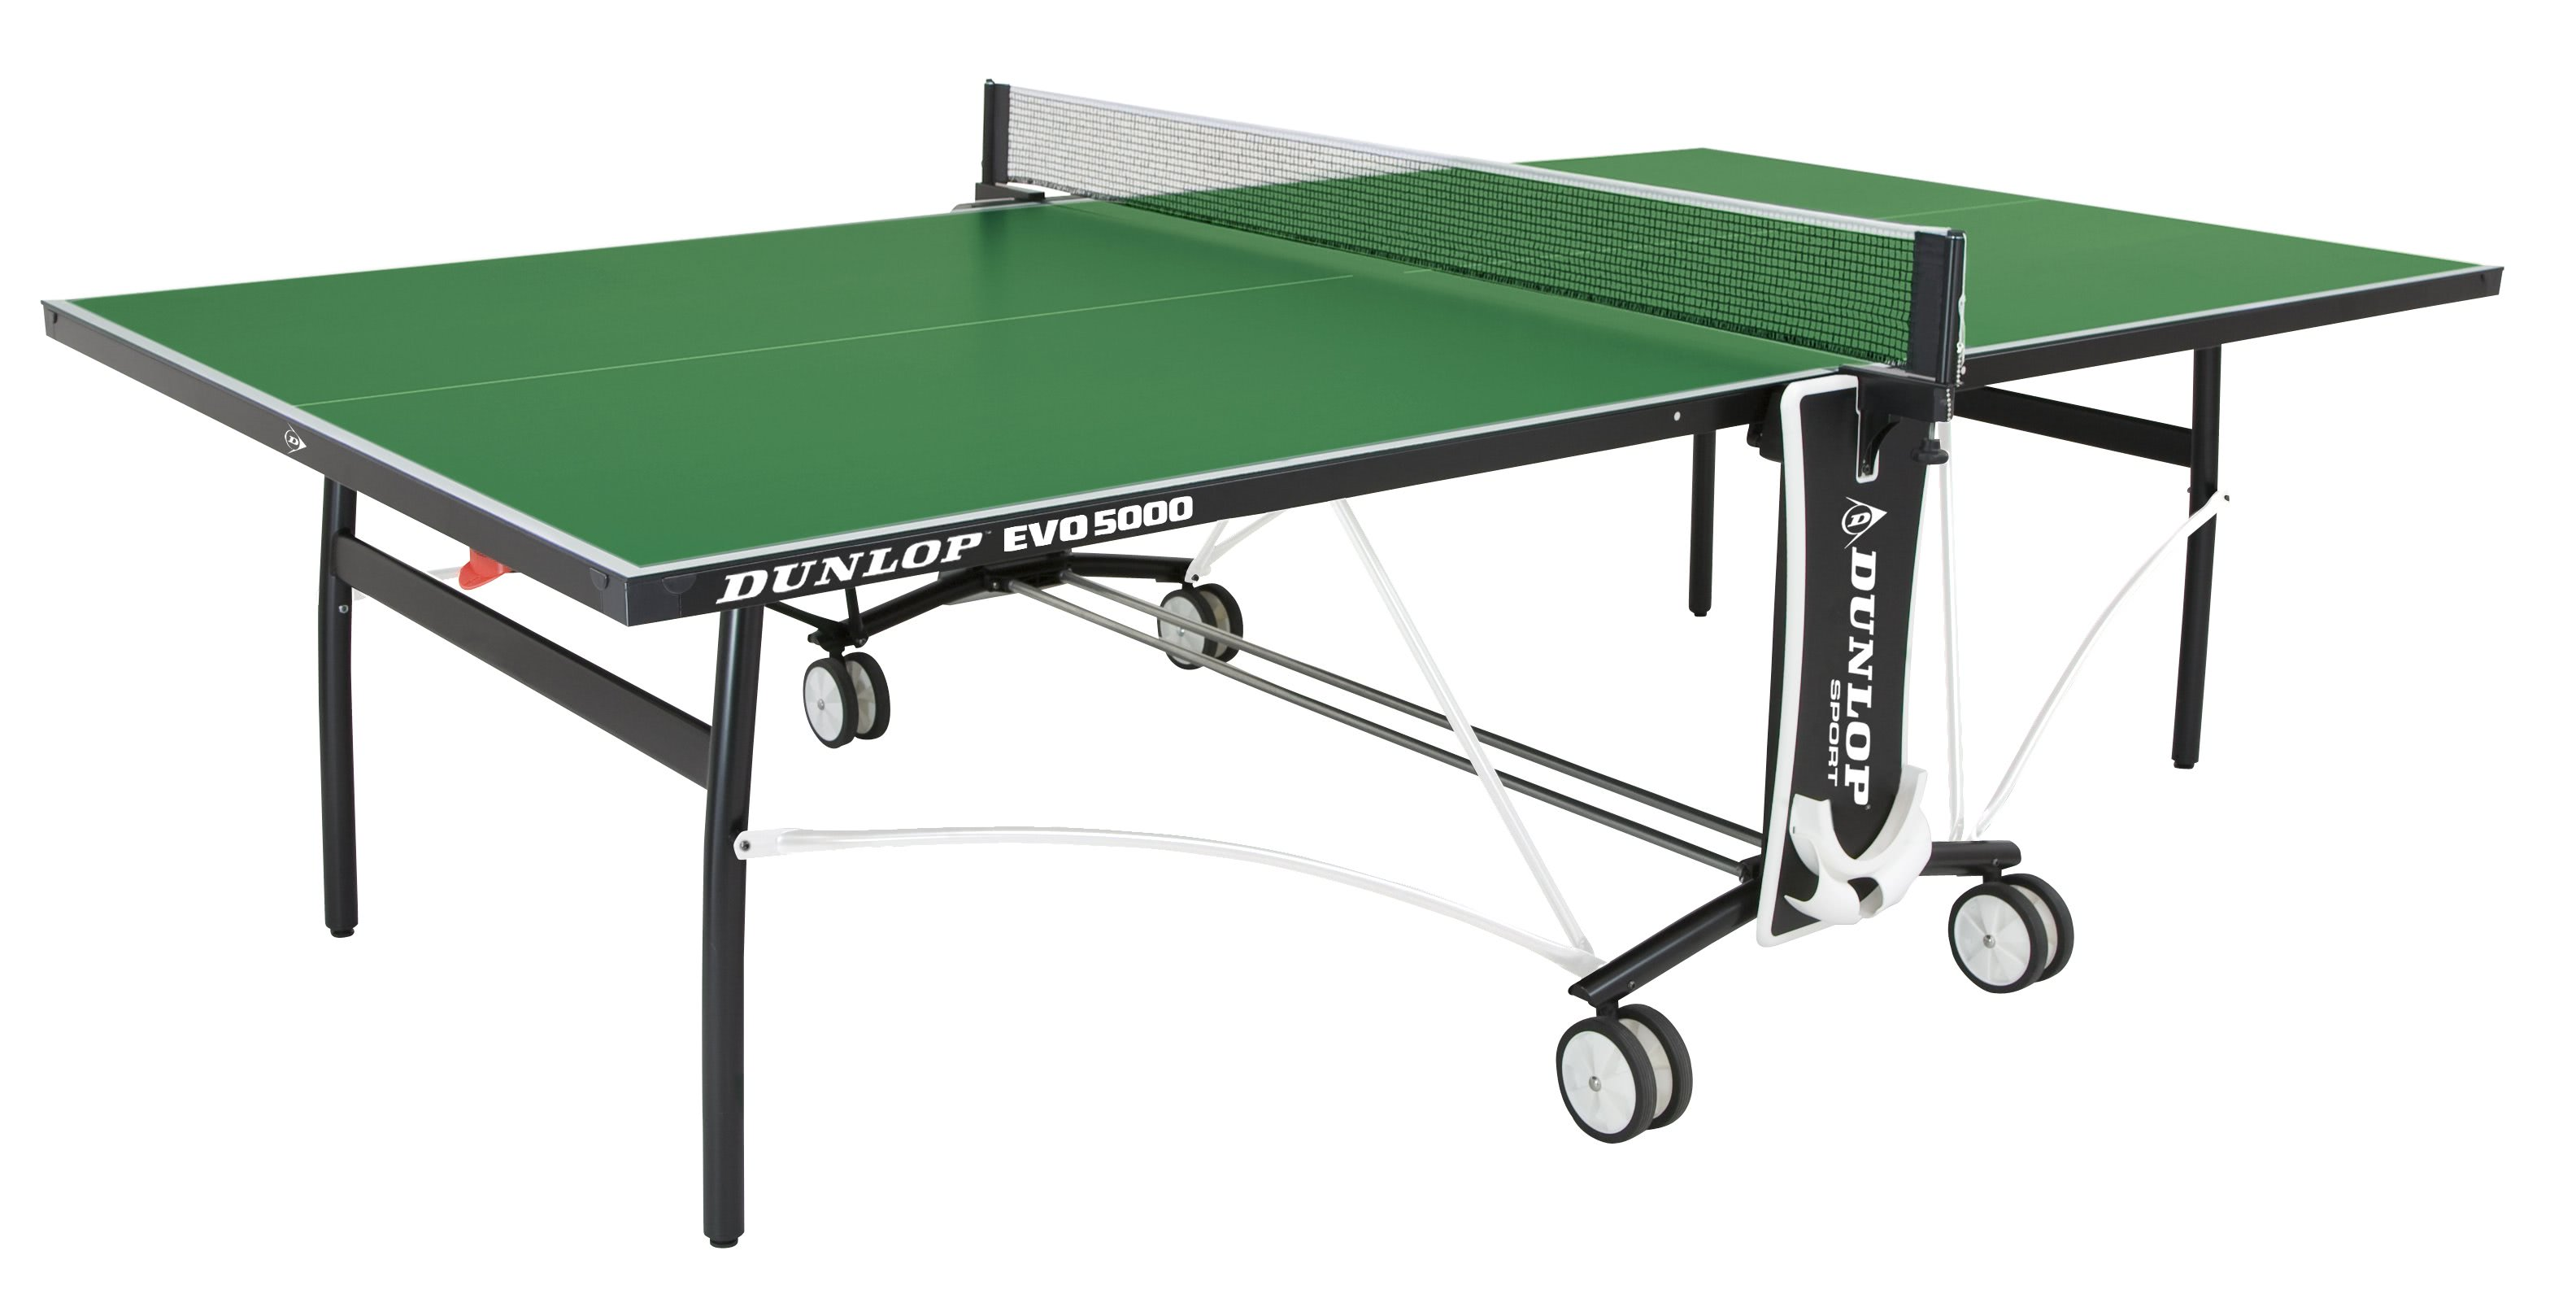 Dunlop evo 5000 outdoor table tennis liberty games - Weatherproof table tennis table ...